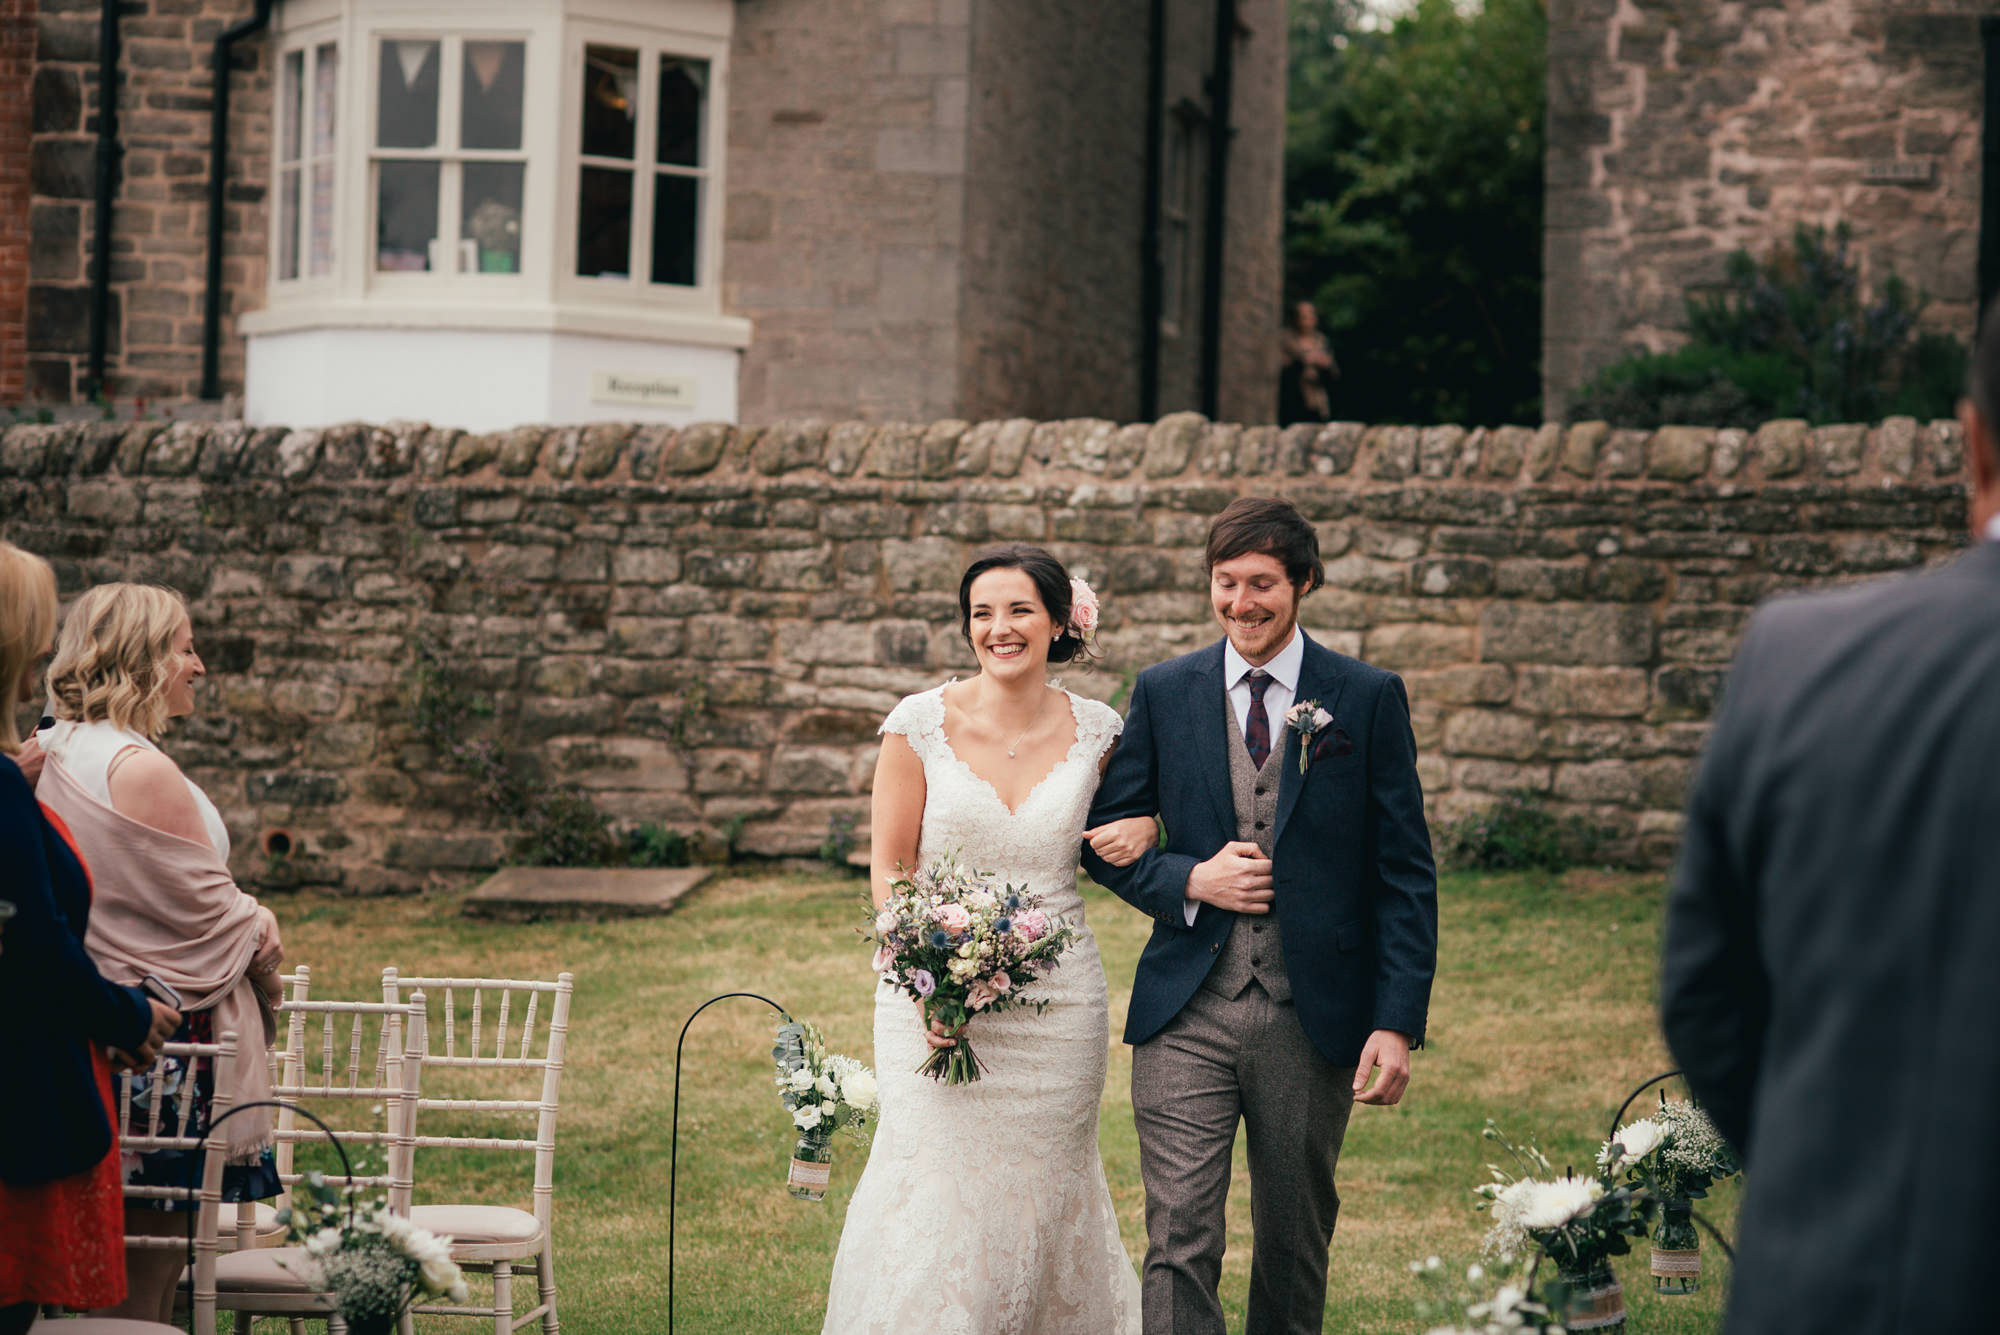 Lyde Court wedding Photographer31